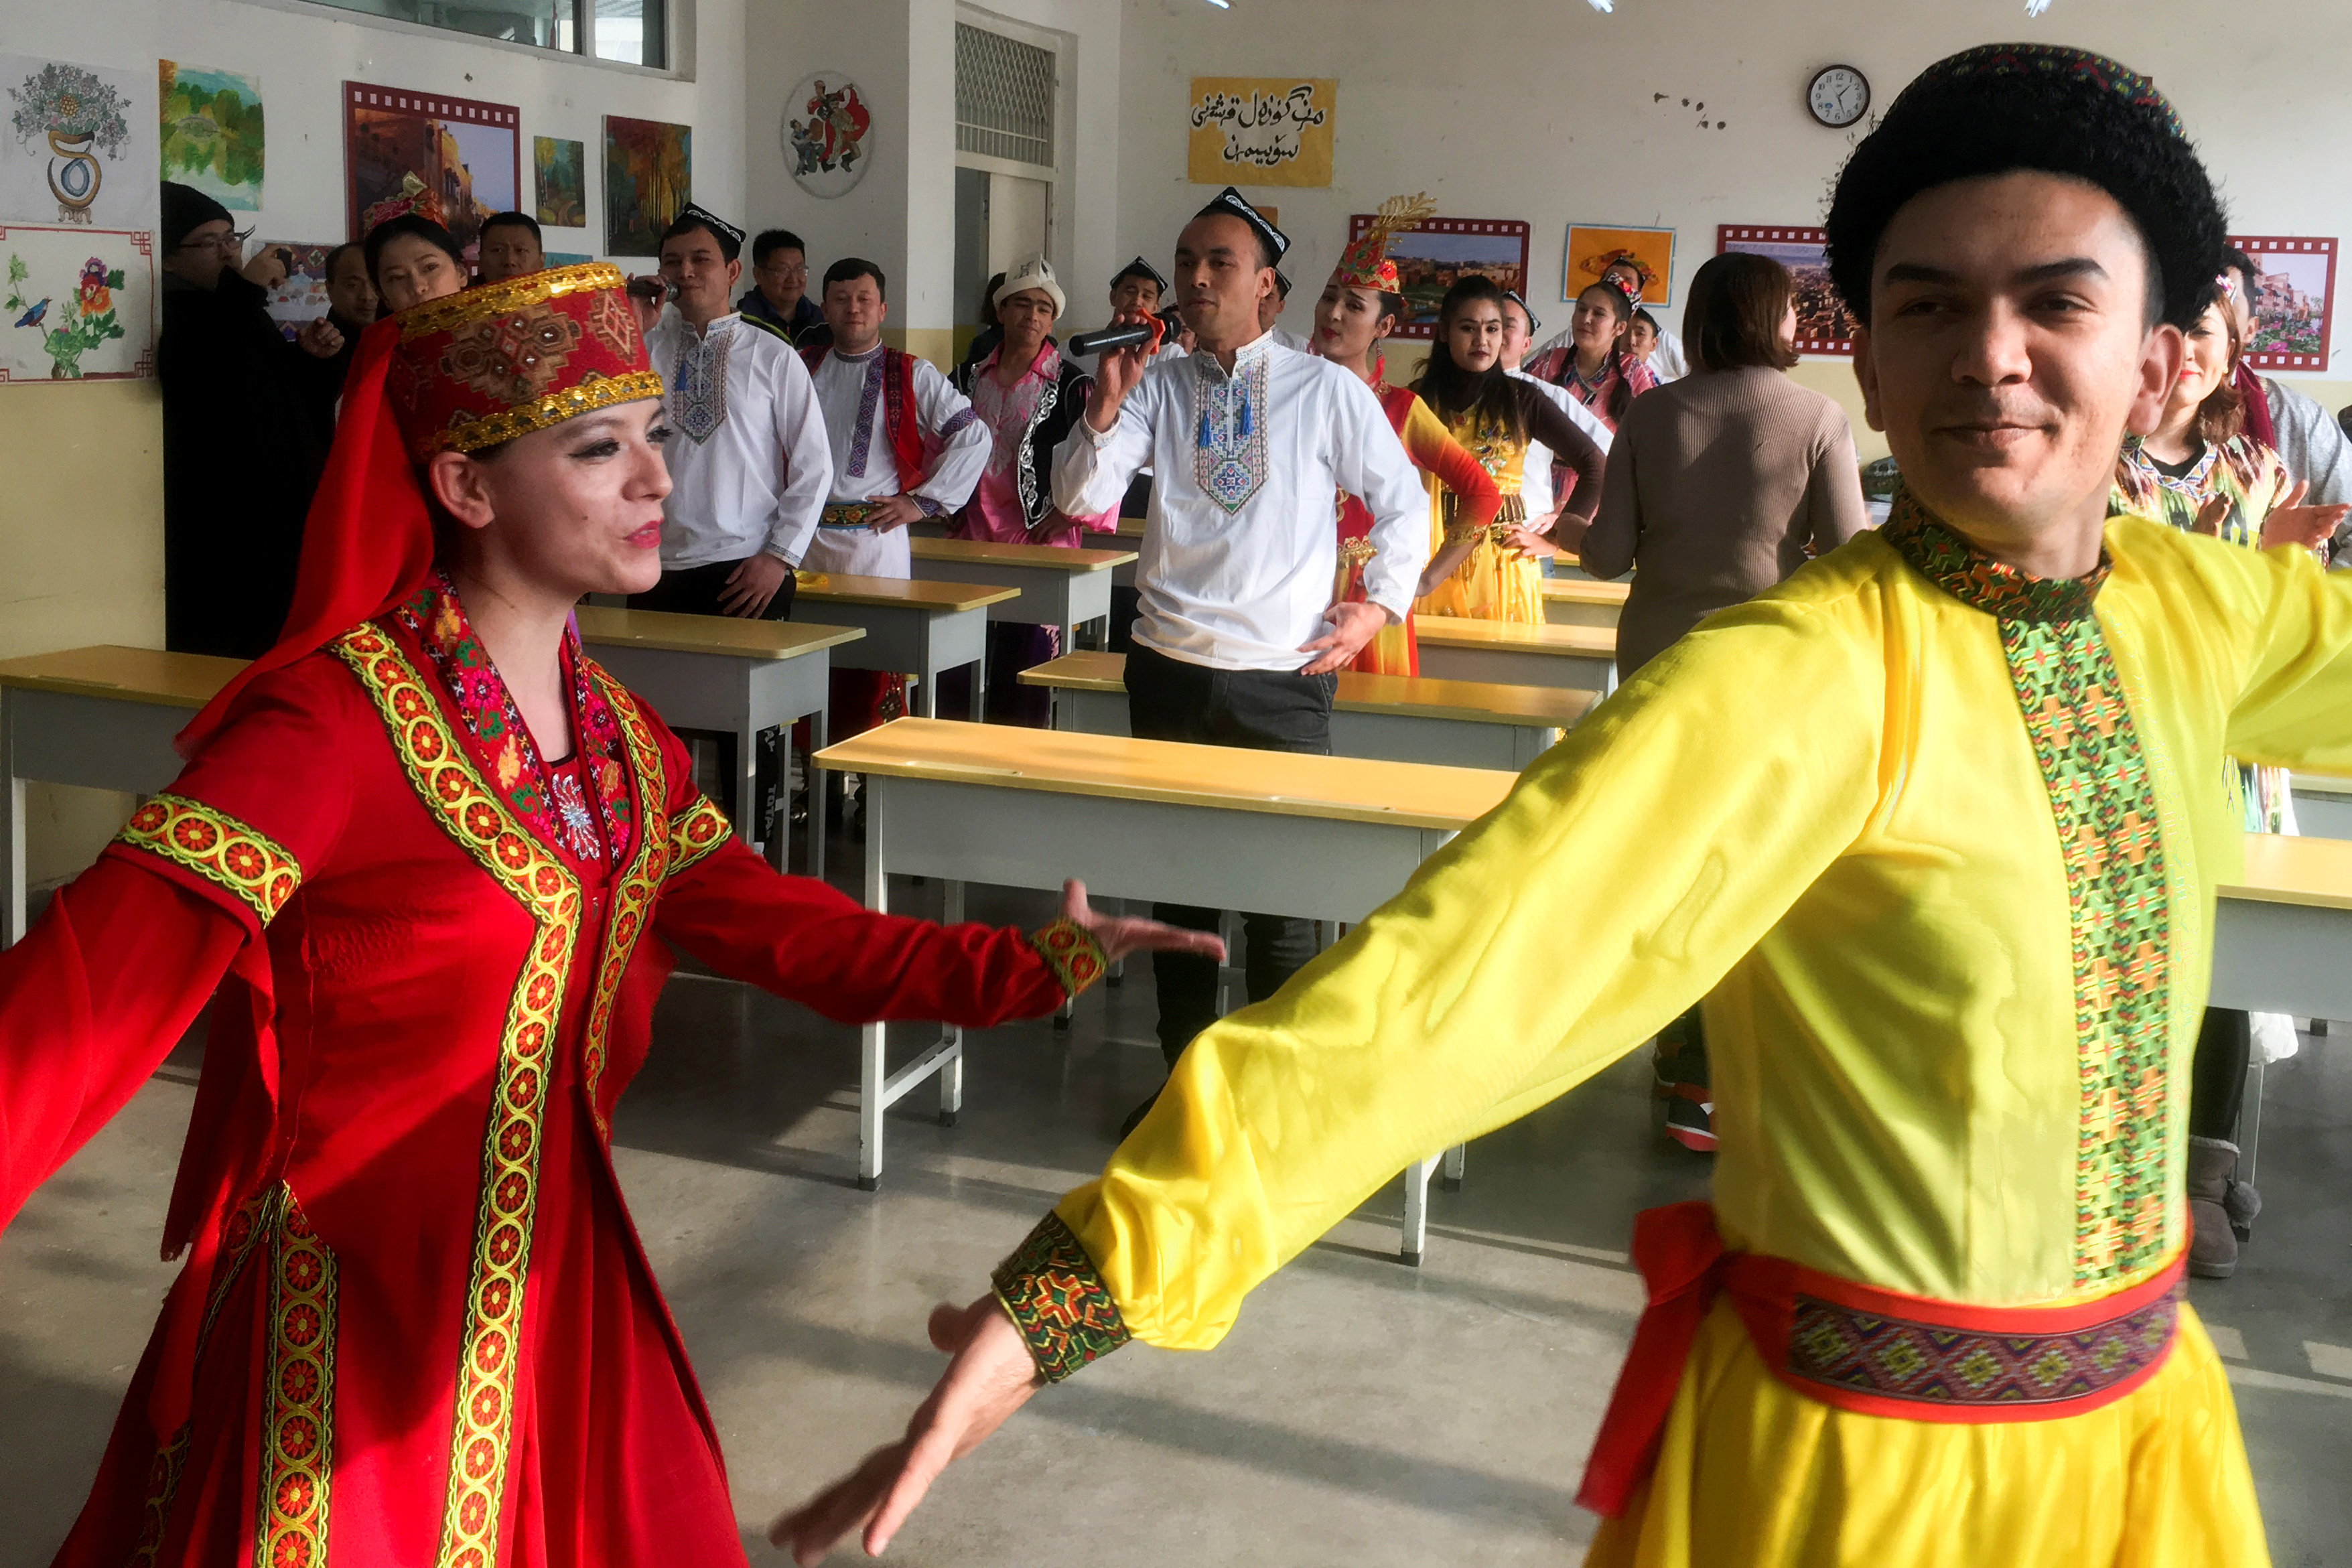 FILE PHOTO: Residents at the Kashgar city vocational educational training centre dance for visiting reporters and officials in a classroom during a government organised visit in Kashgar, Xinjiang Uighur Autonomous Region, China, January 4, 2019. REUTERS/Ben Blanchard/File Photo